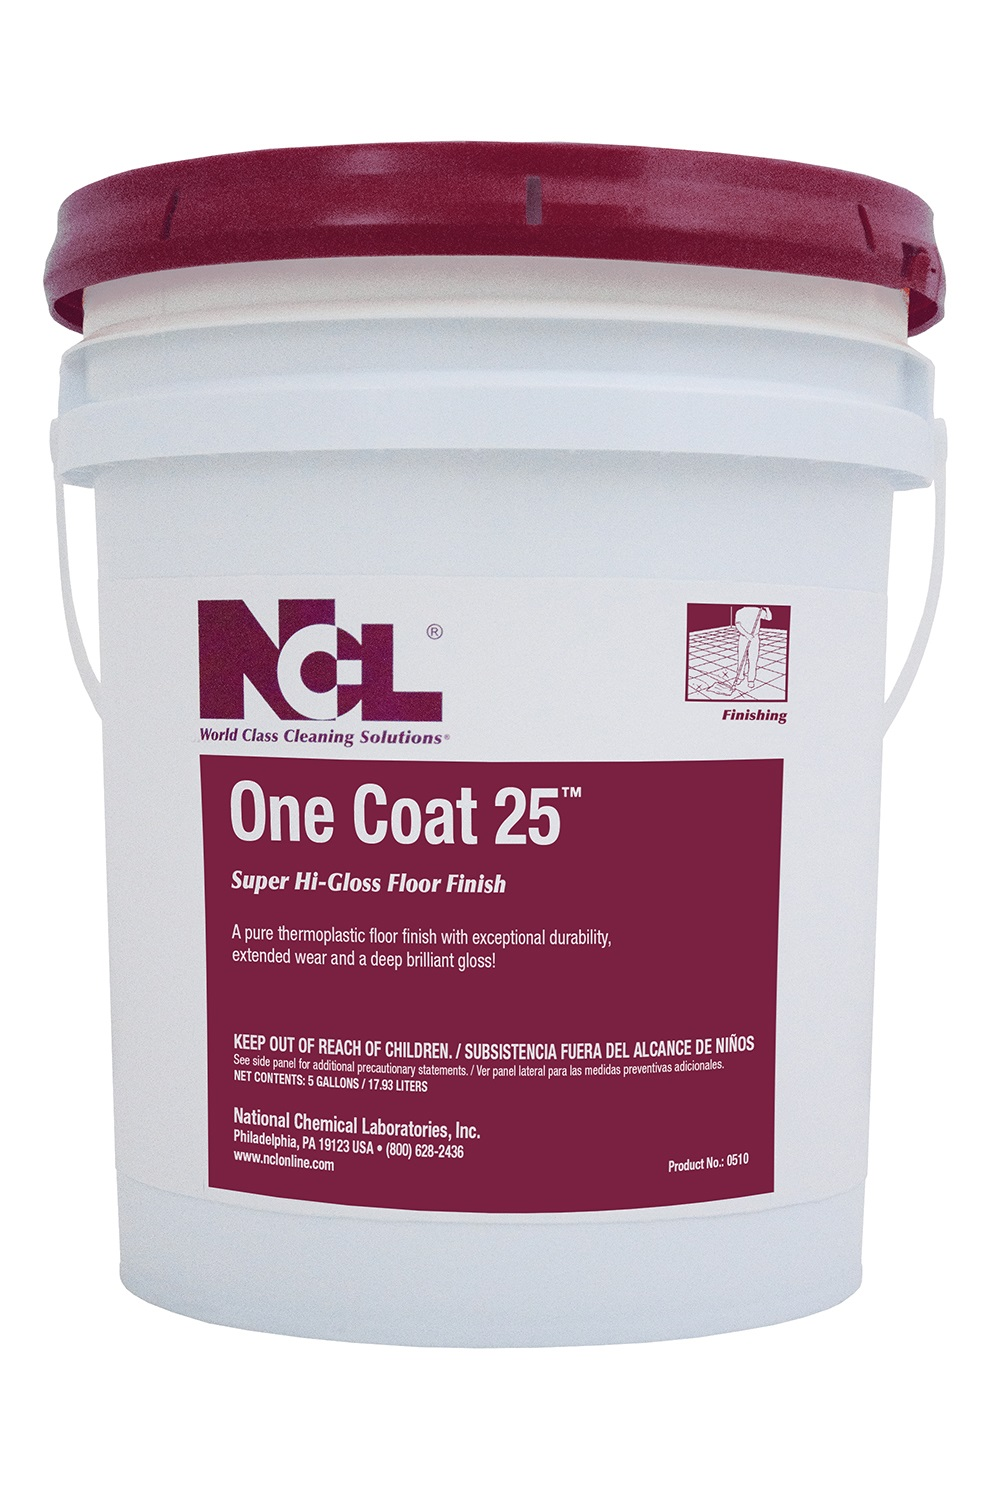 Ncl One Coat 25 Super High Gloss Floor Finish 5gal